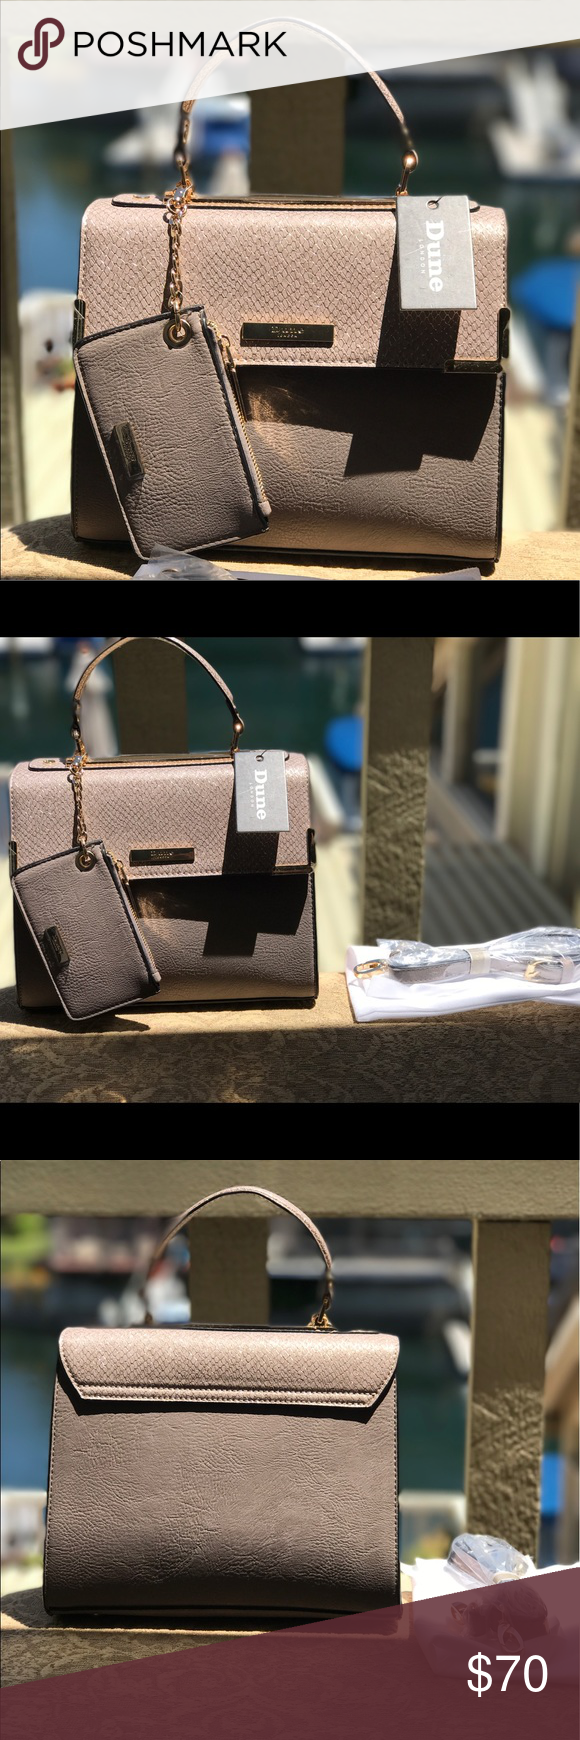 c9df13693b66 💖RARE💖Authentic Dune LONDON Purse👜 Brand new. No scratches or defects of